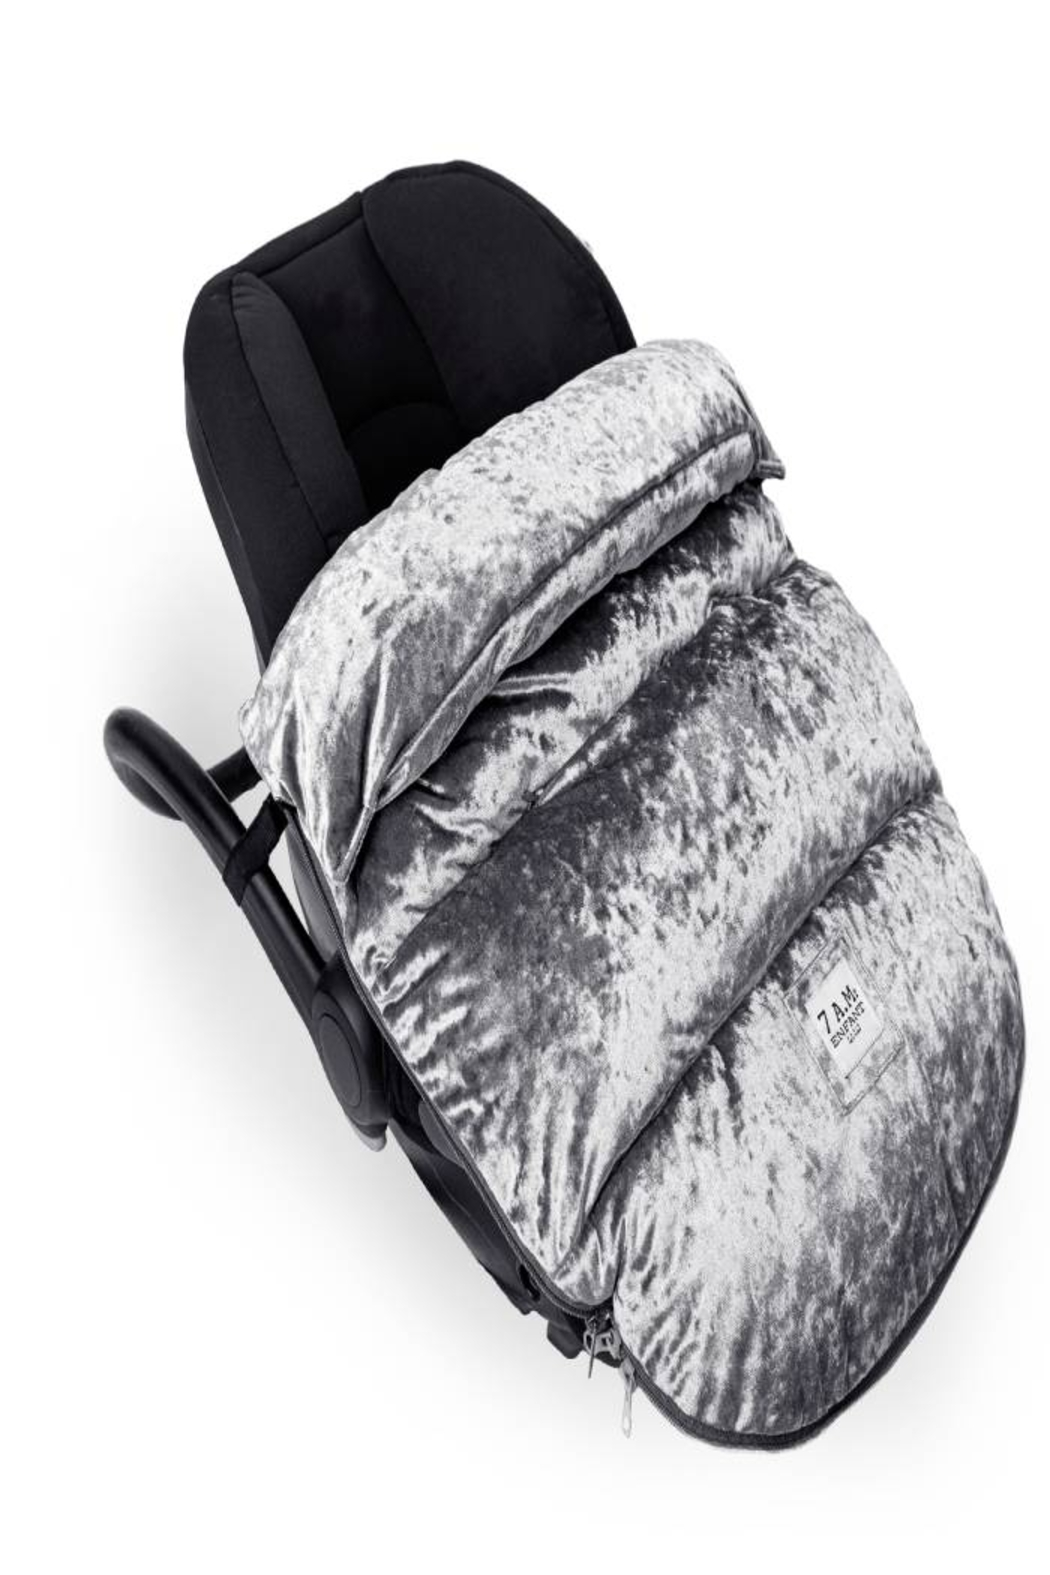 7AM Enfant 7 AM VelvetPOD Baby Carrier For Any Car Seat Or Stroller, Winter Gear (W:19 X D:2 X H:34 Inches) - Side Cropped Image